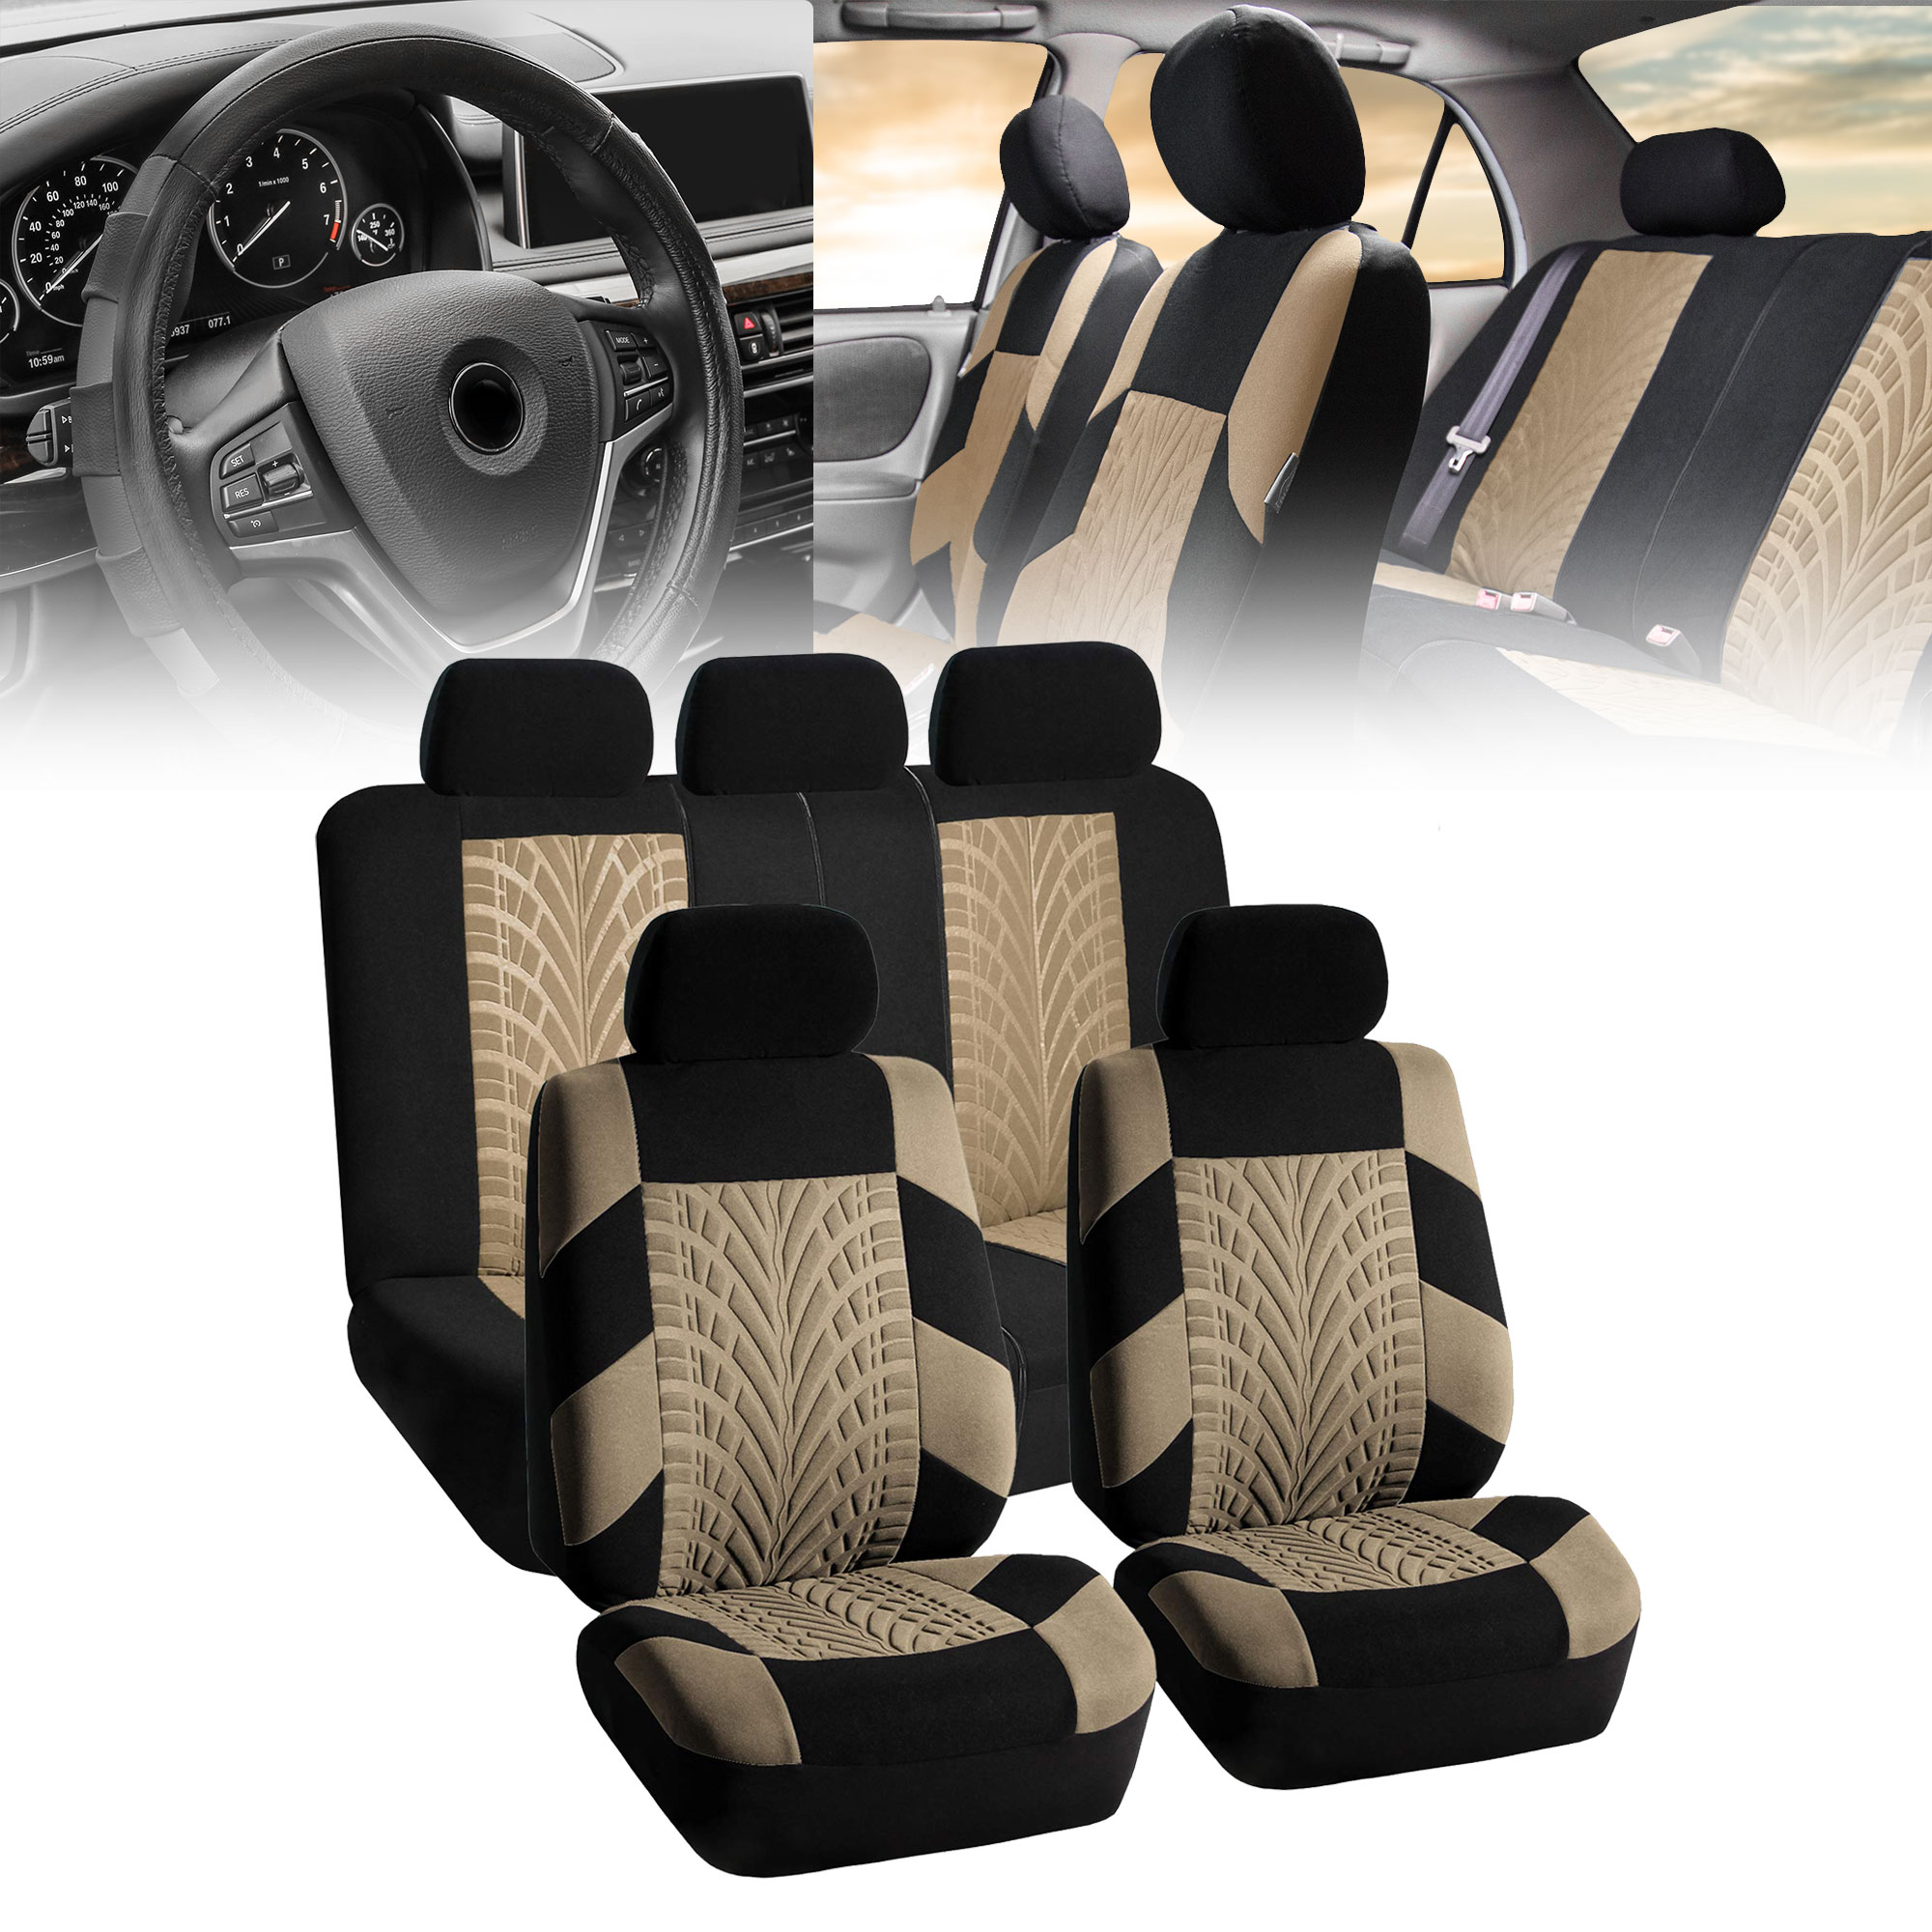 Beige Car Seat Covers for Car SUV with Gray Leather Steering Cover Complete Set